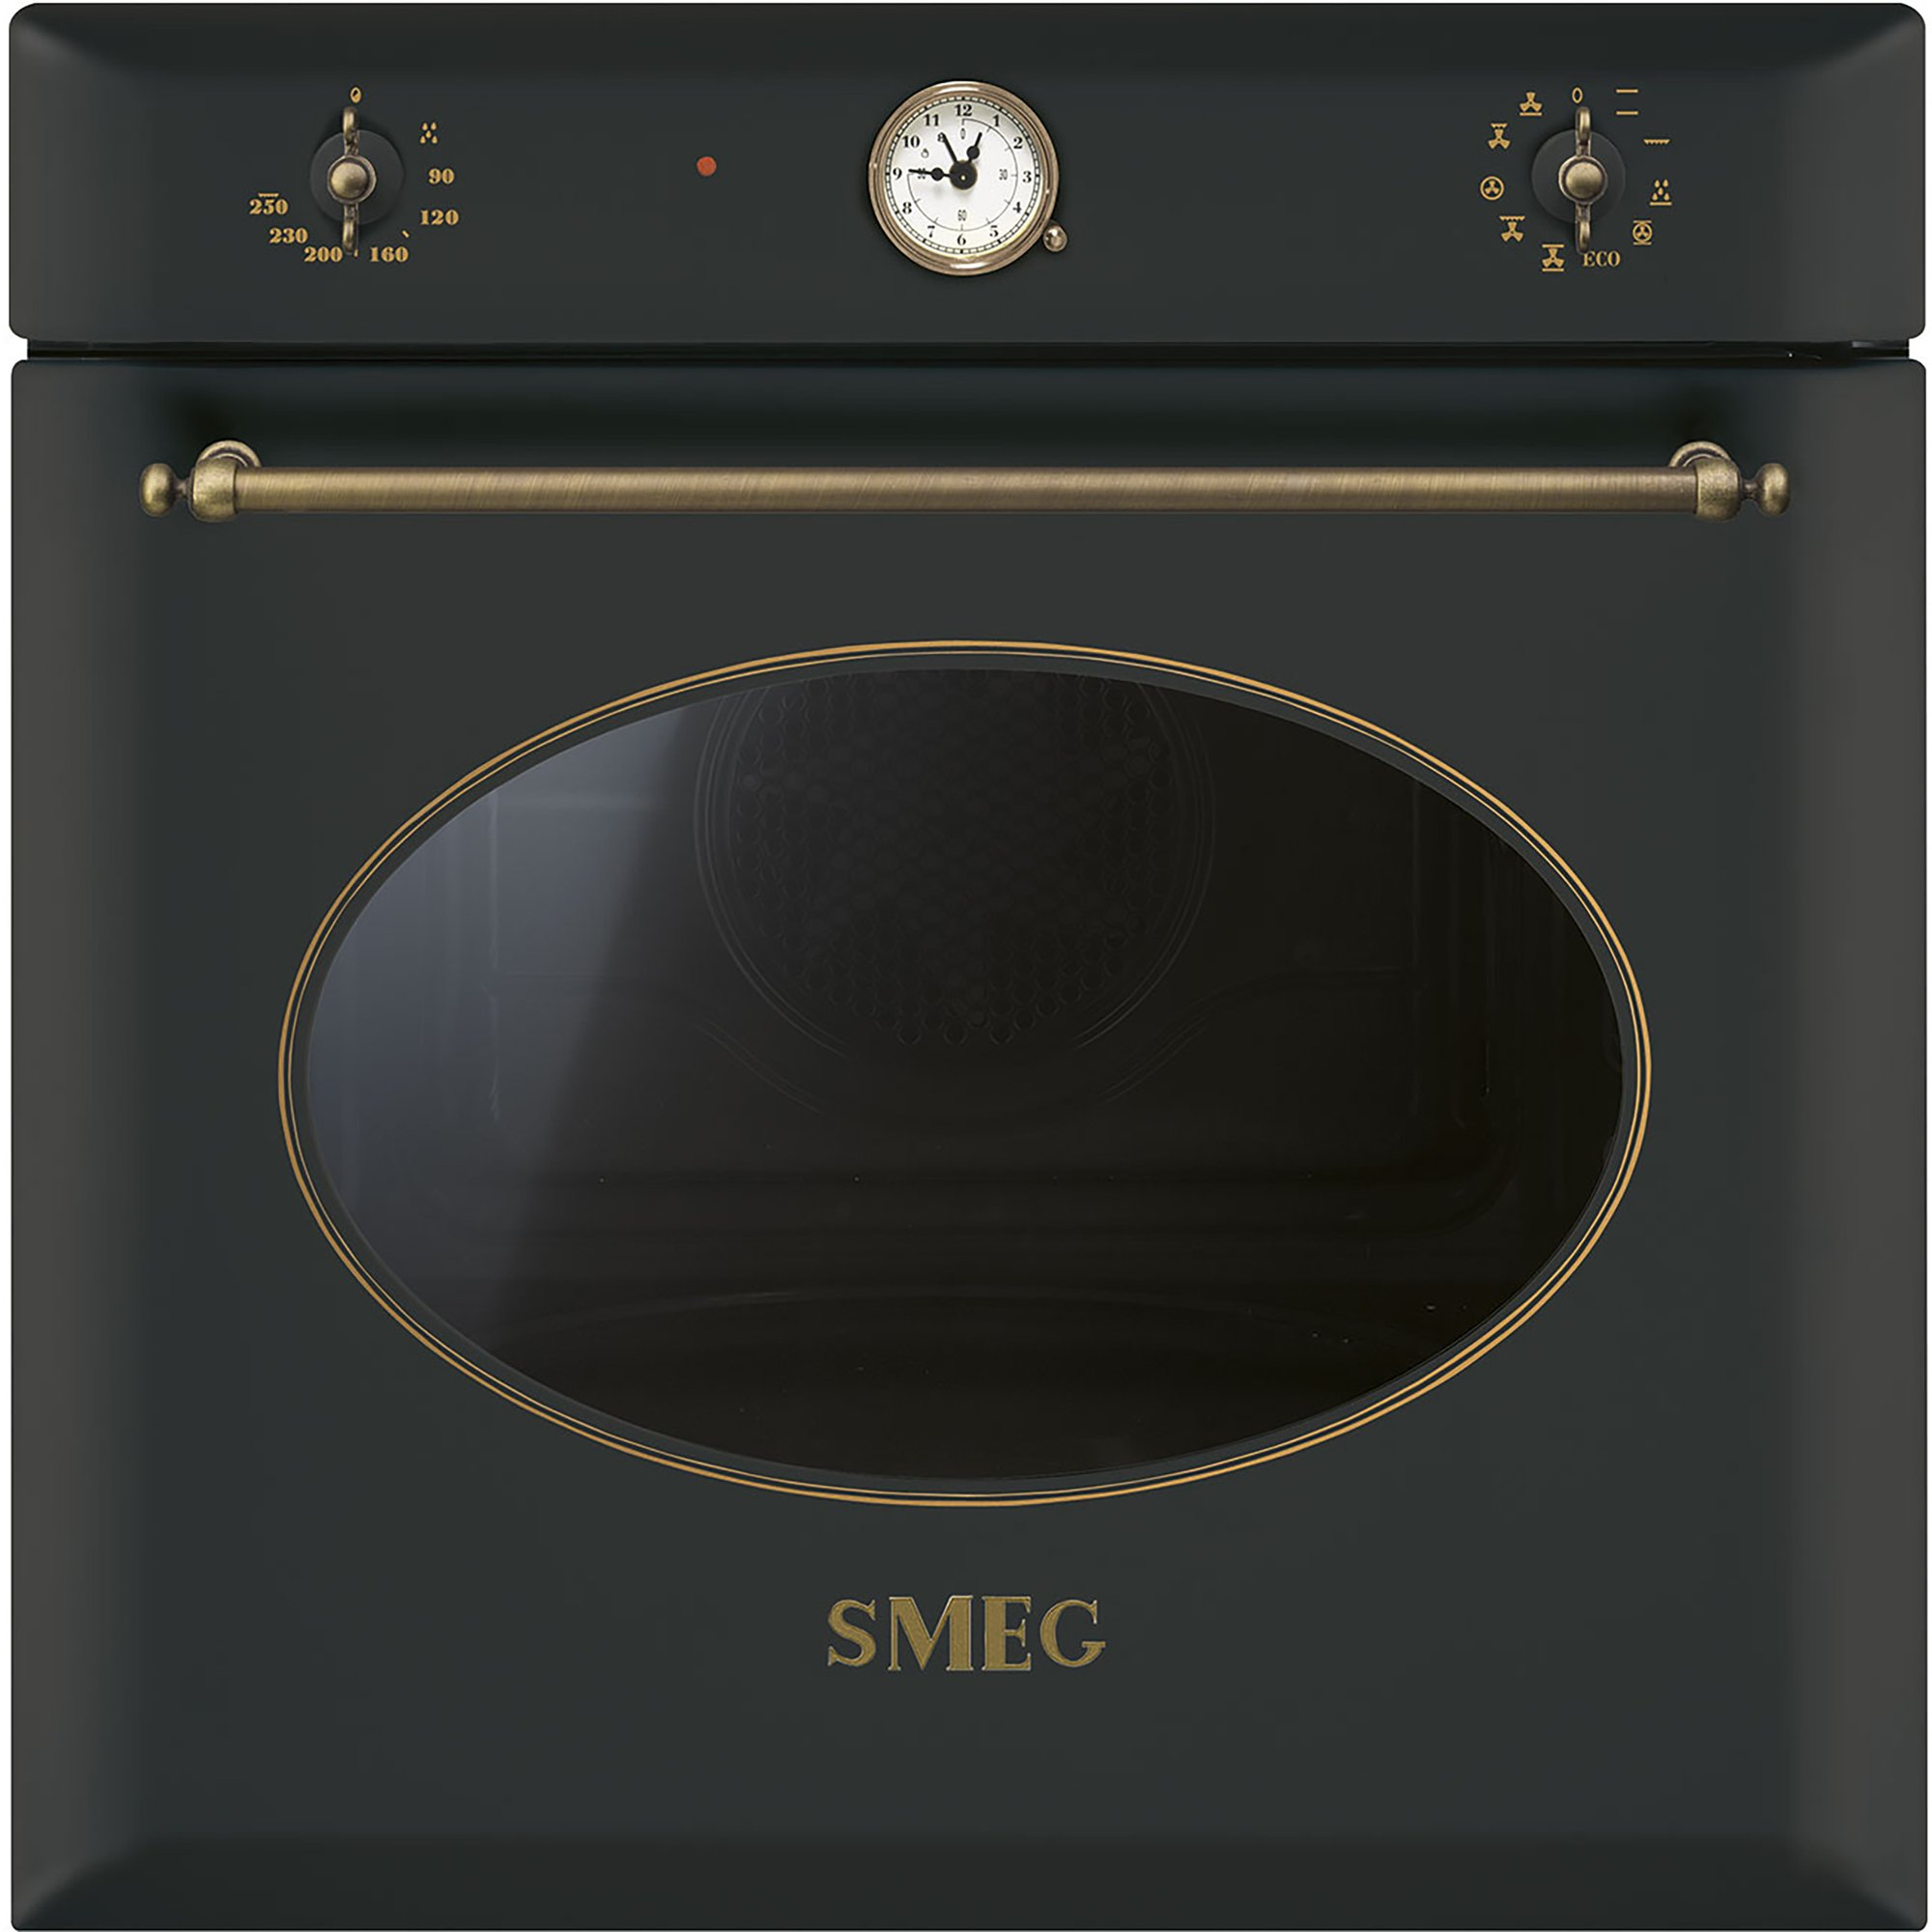 Smeg 60 cm Colonial Multifunktionsugn Antracit/Antik Mässing